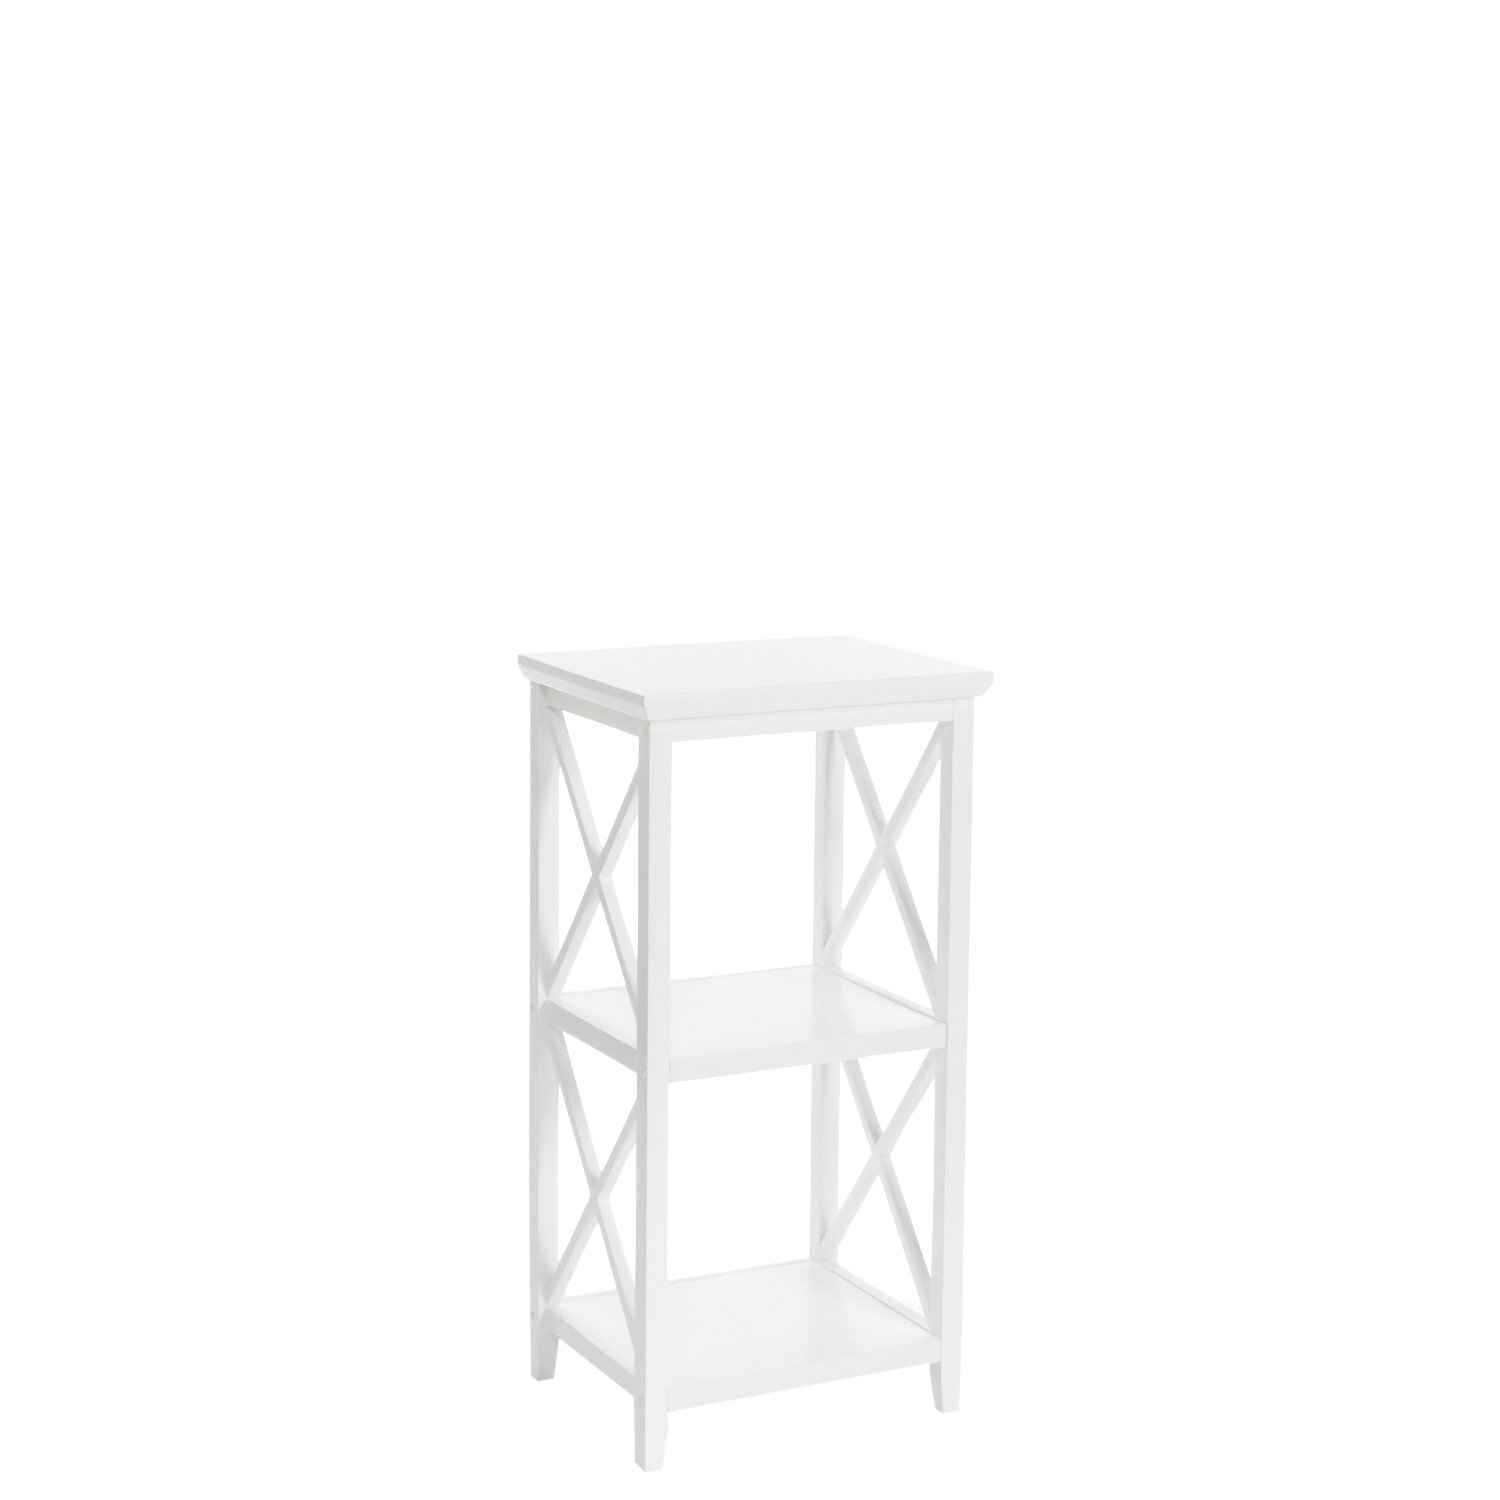 RiverRidge 06-072 X- Frame Collection Storage Tower, White